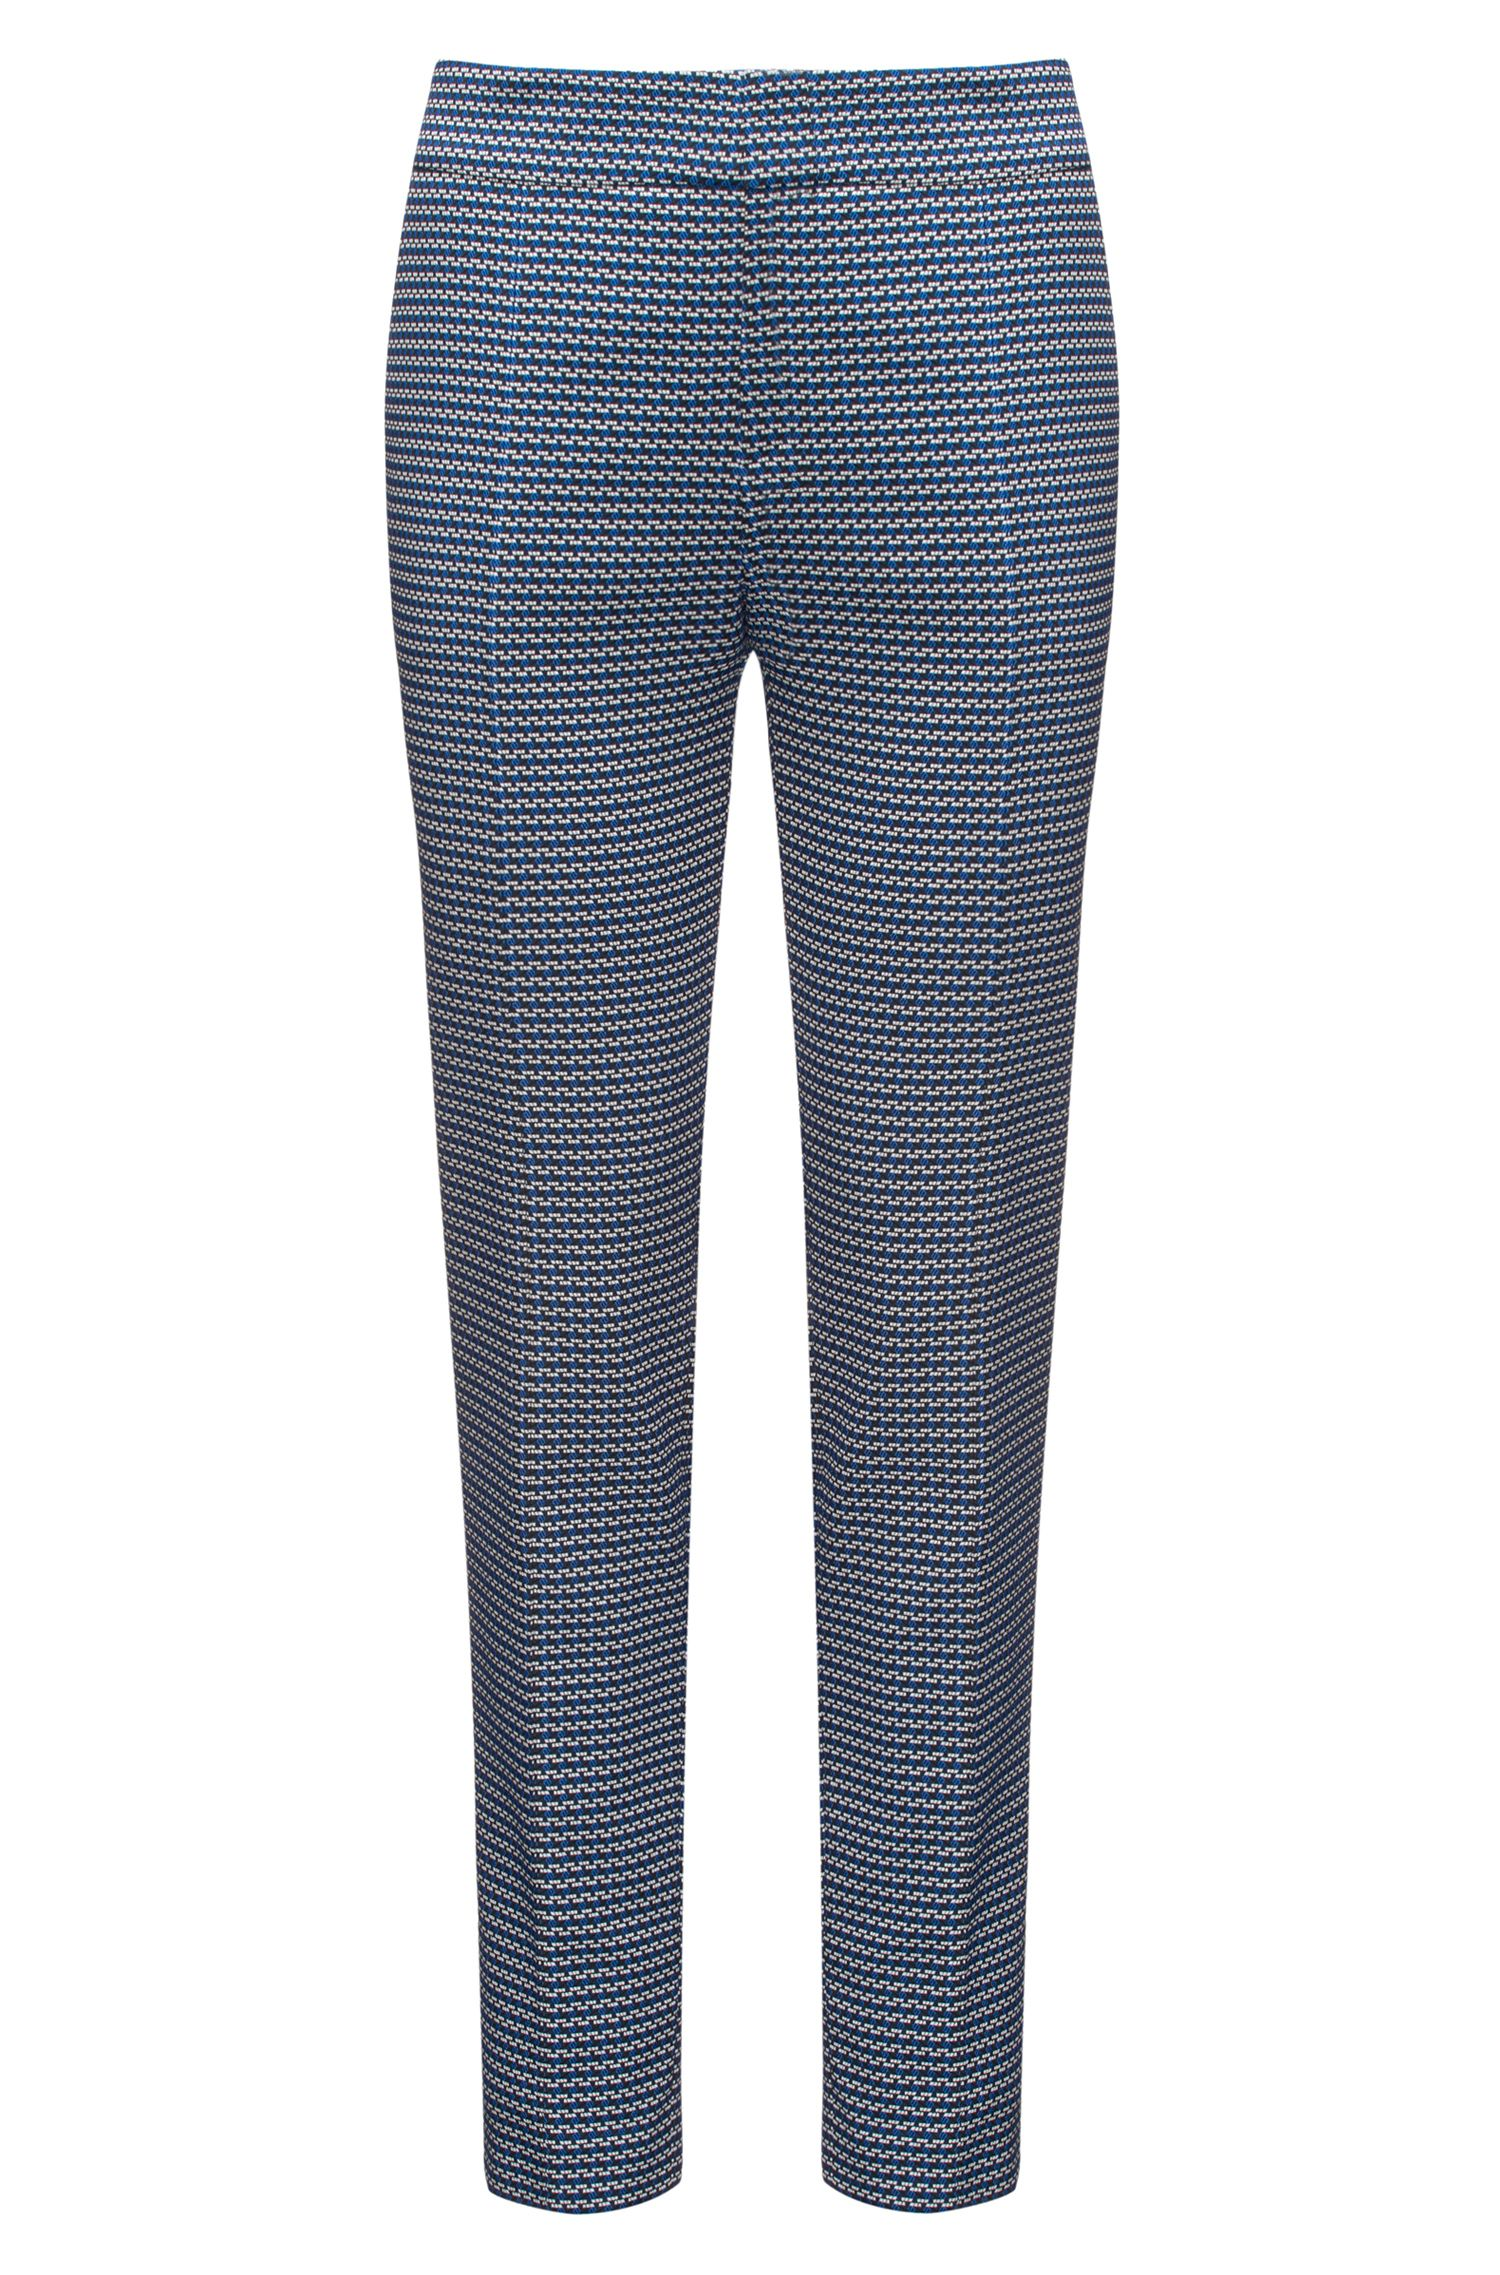 Slim-fit cropped trousers in cotton-blend jacquard